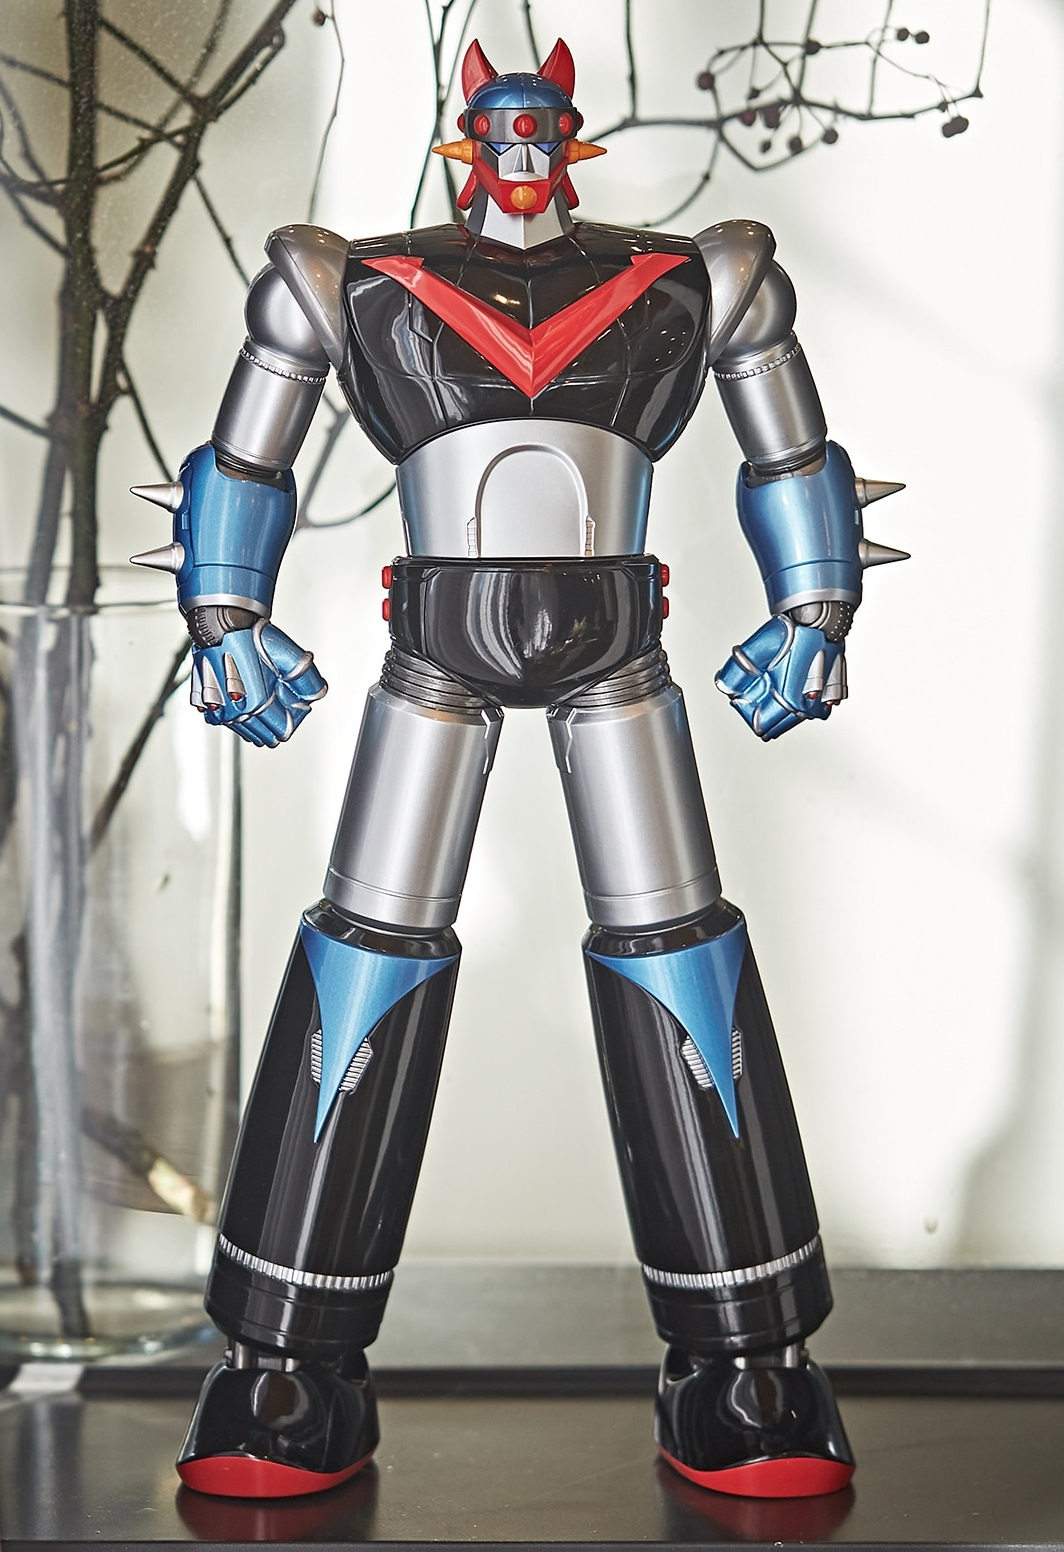 Korean Robot: TAEKWON V Metallic Color 40 cm